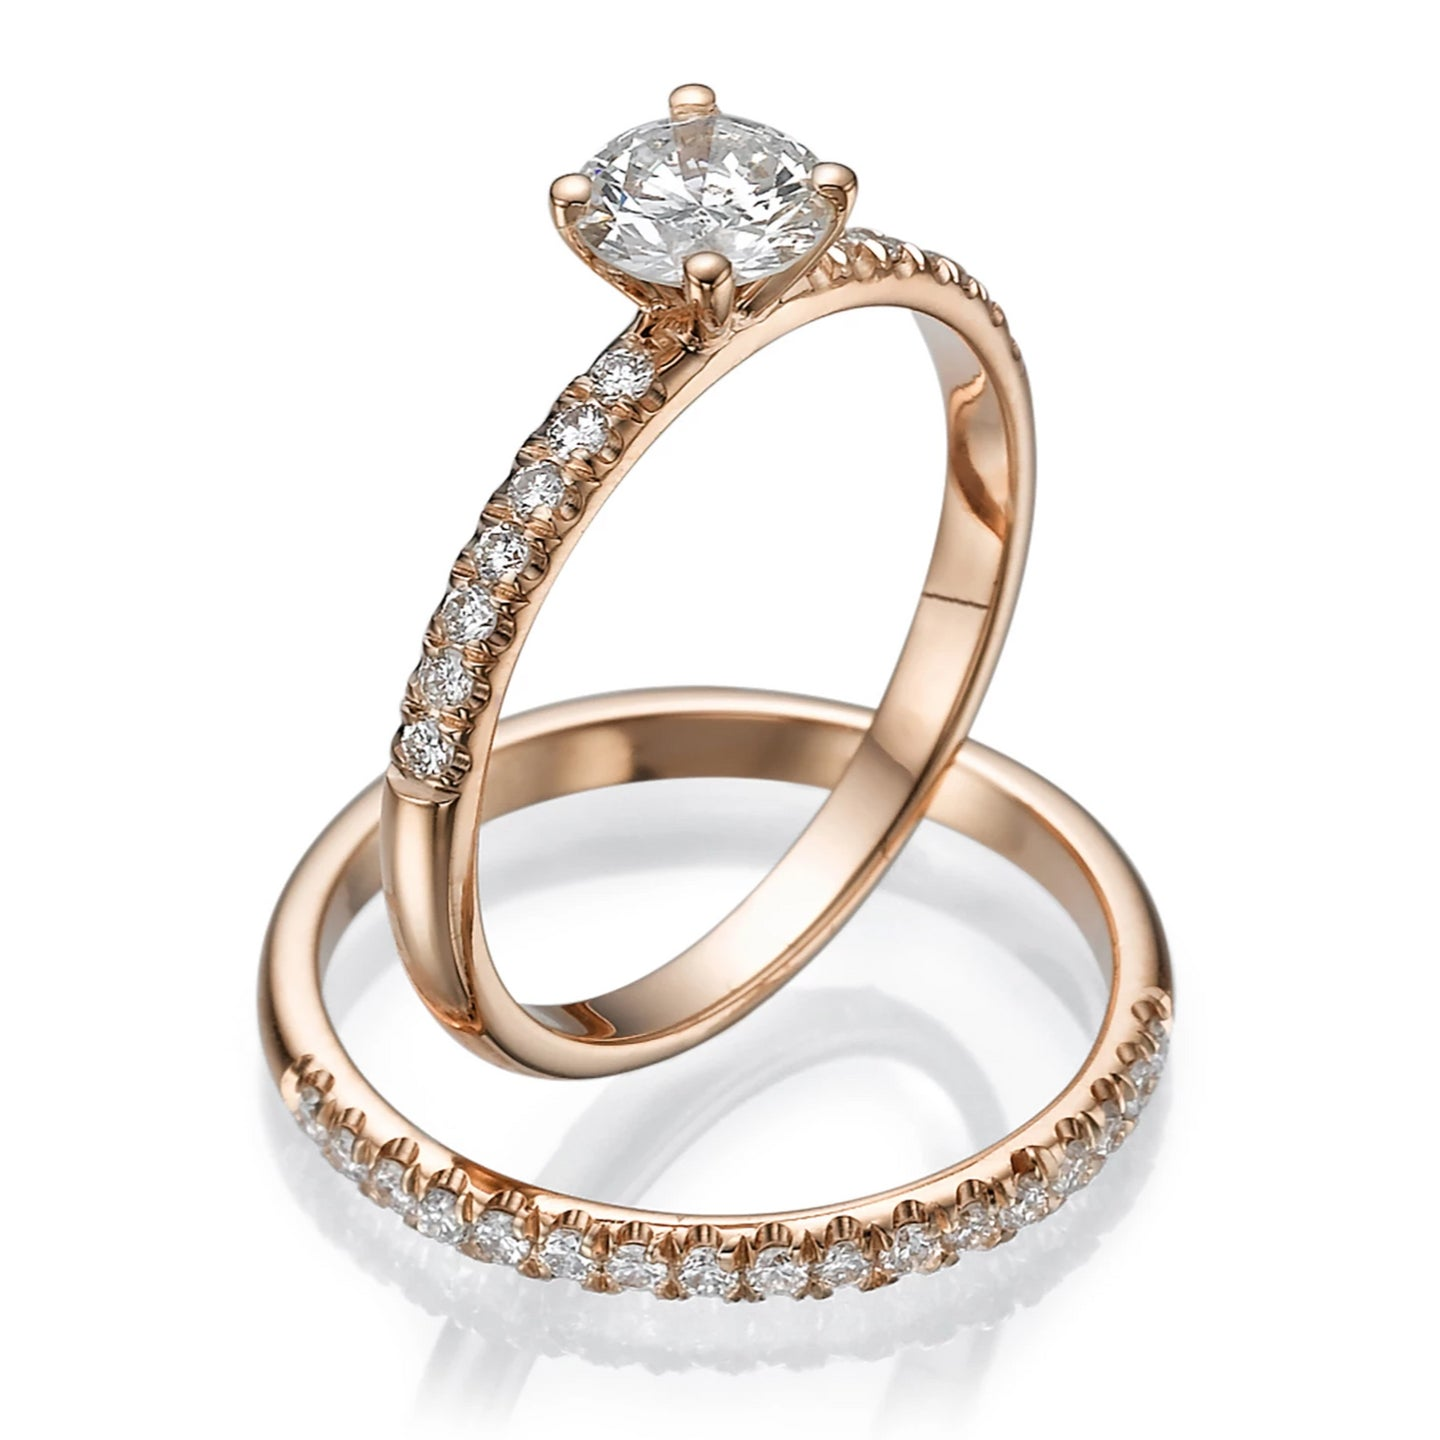 0.8 Carat 14K Rose Gold Moissanite & Diamonds